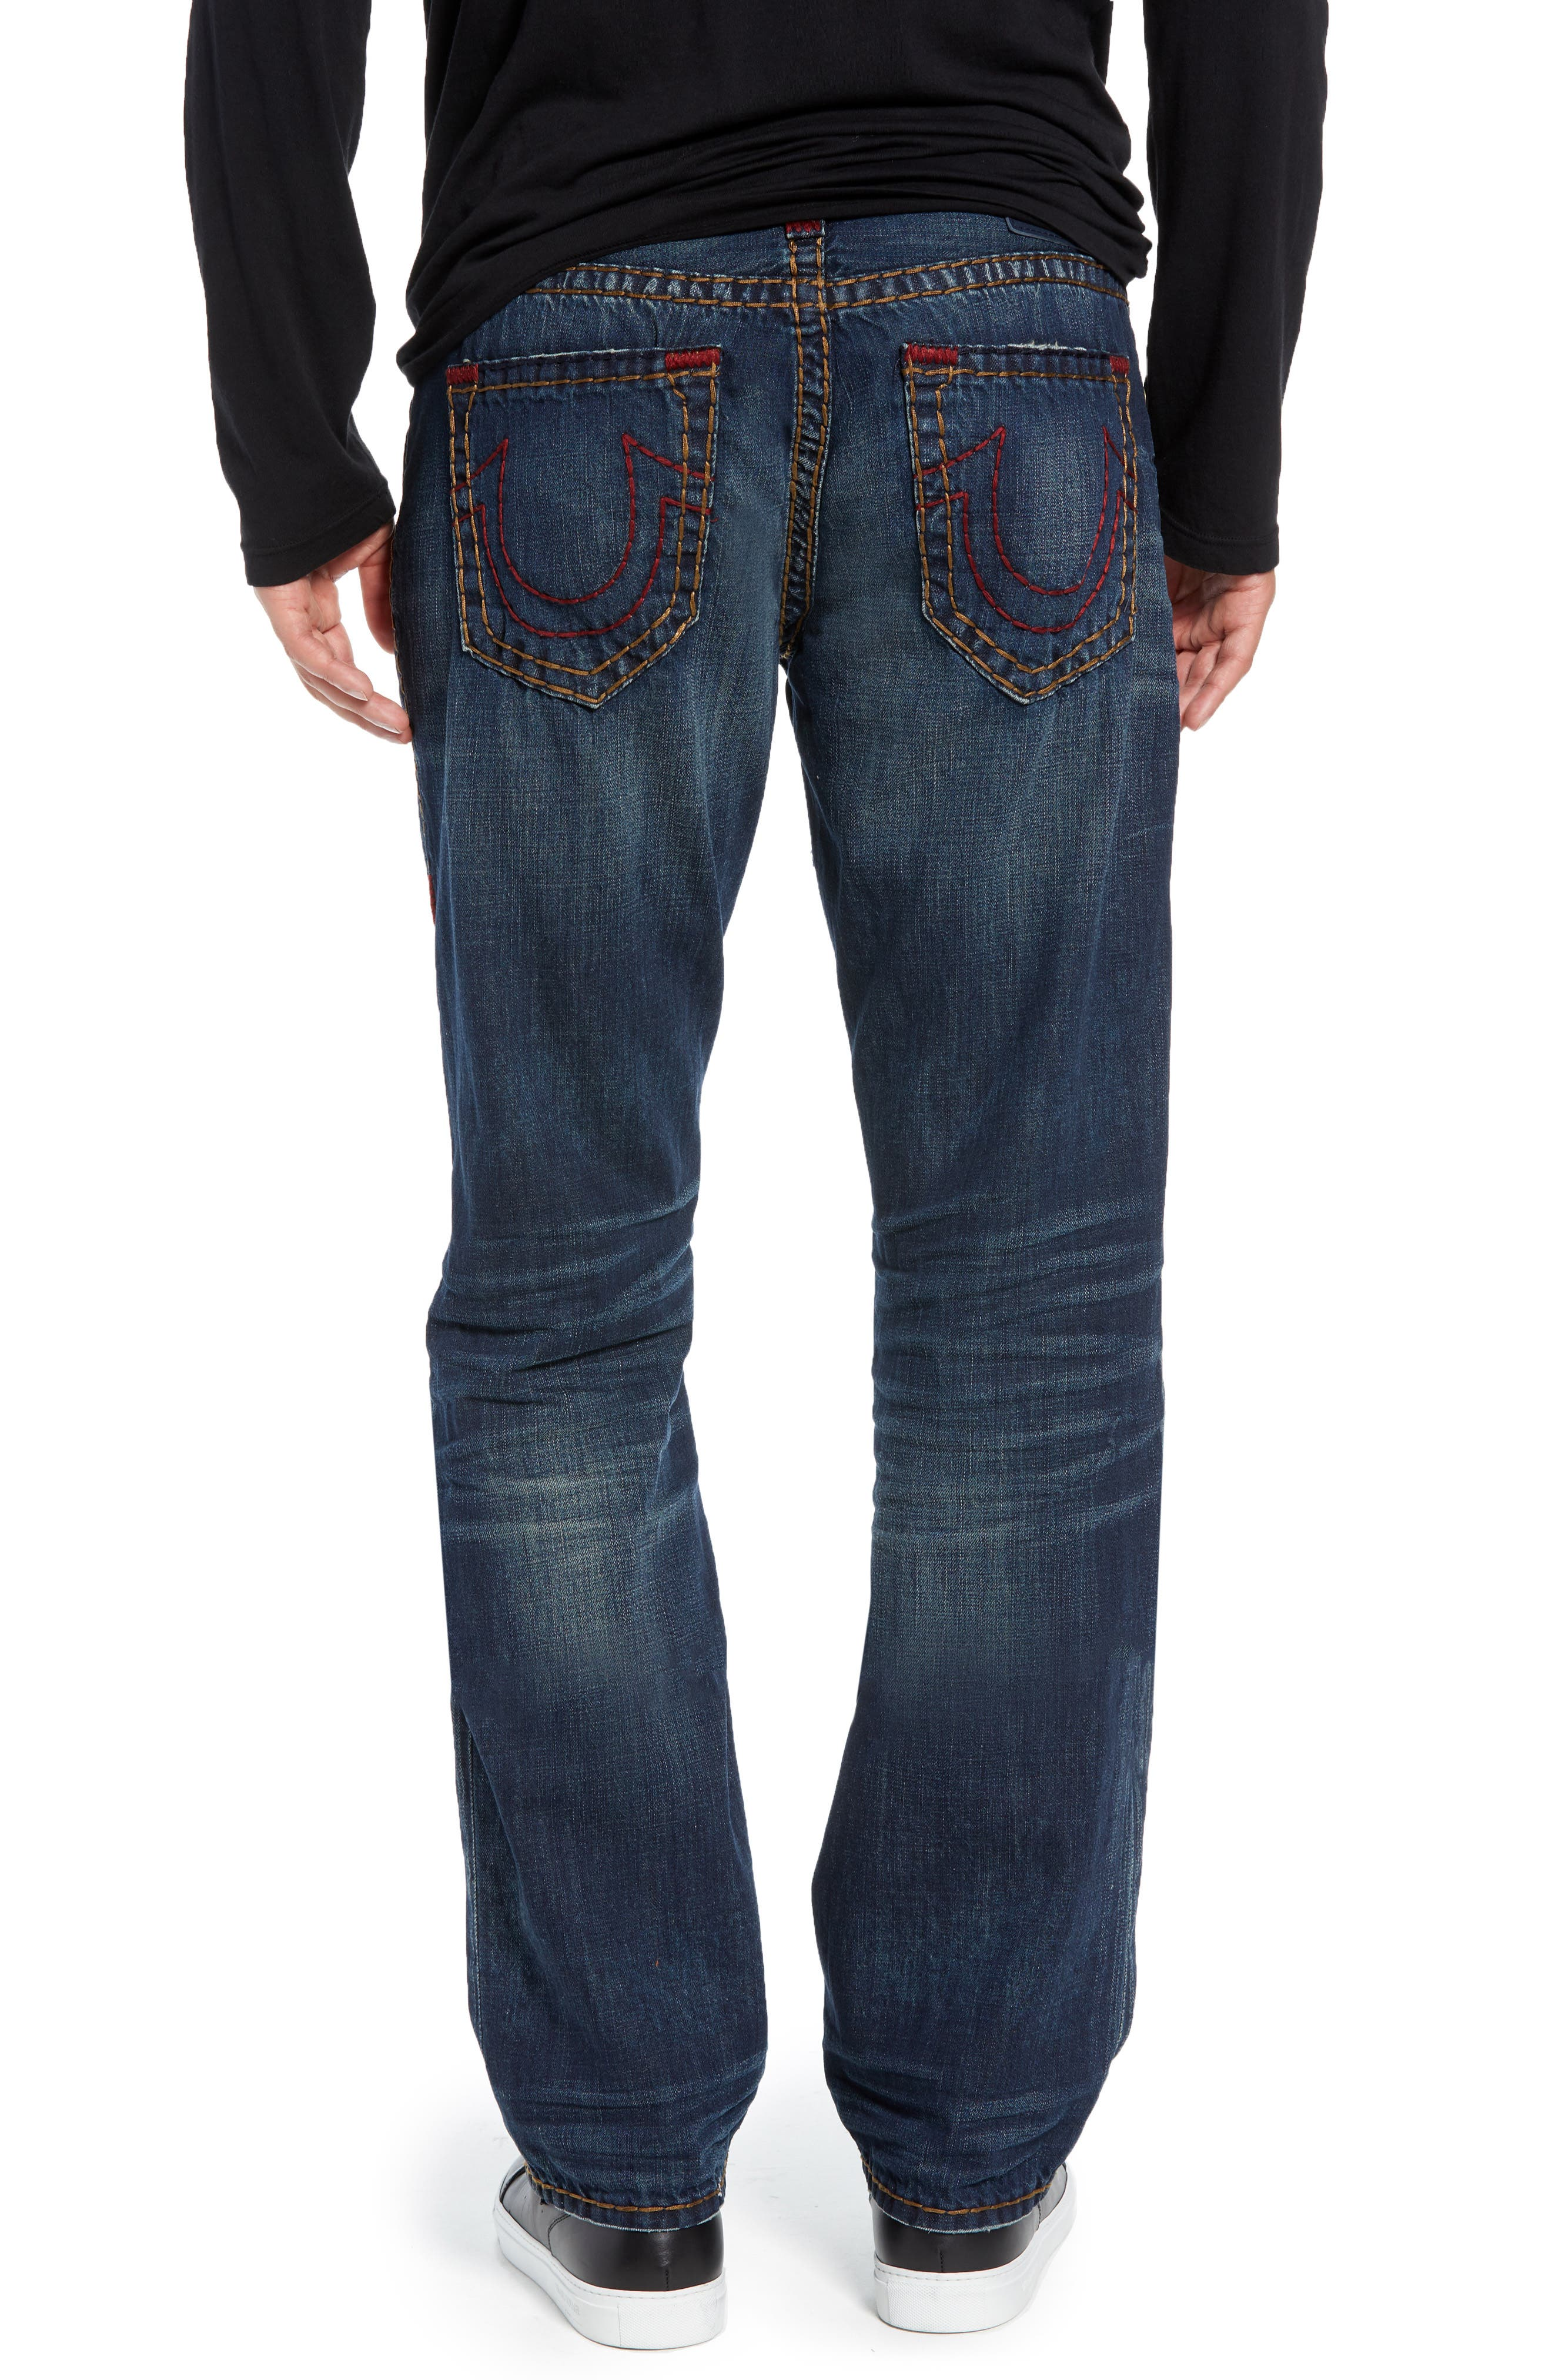 Ricky Skinny Fit Jeans,                             Alternate thumbnail 2, color,                             DARK MONORAIL